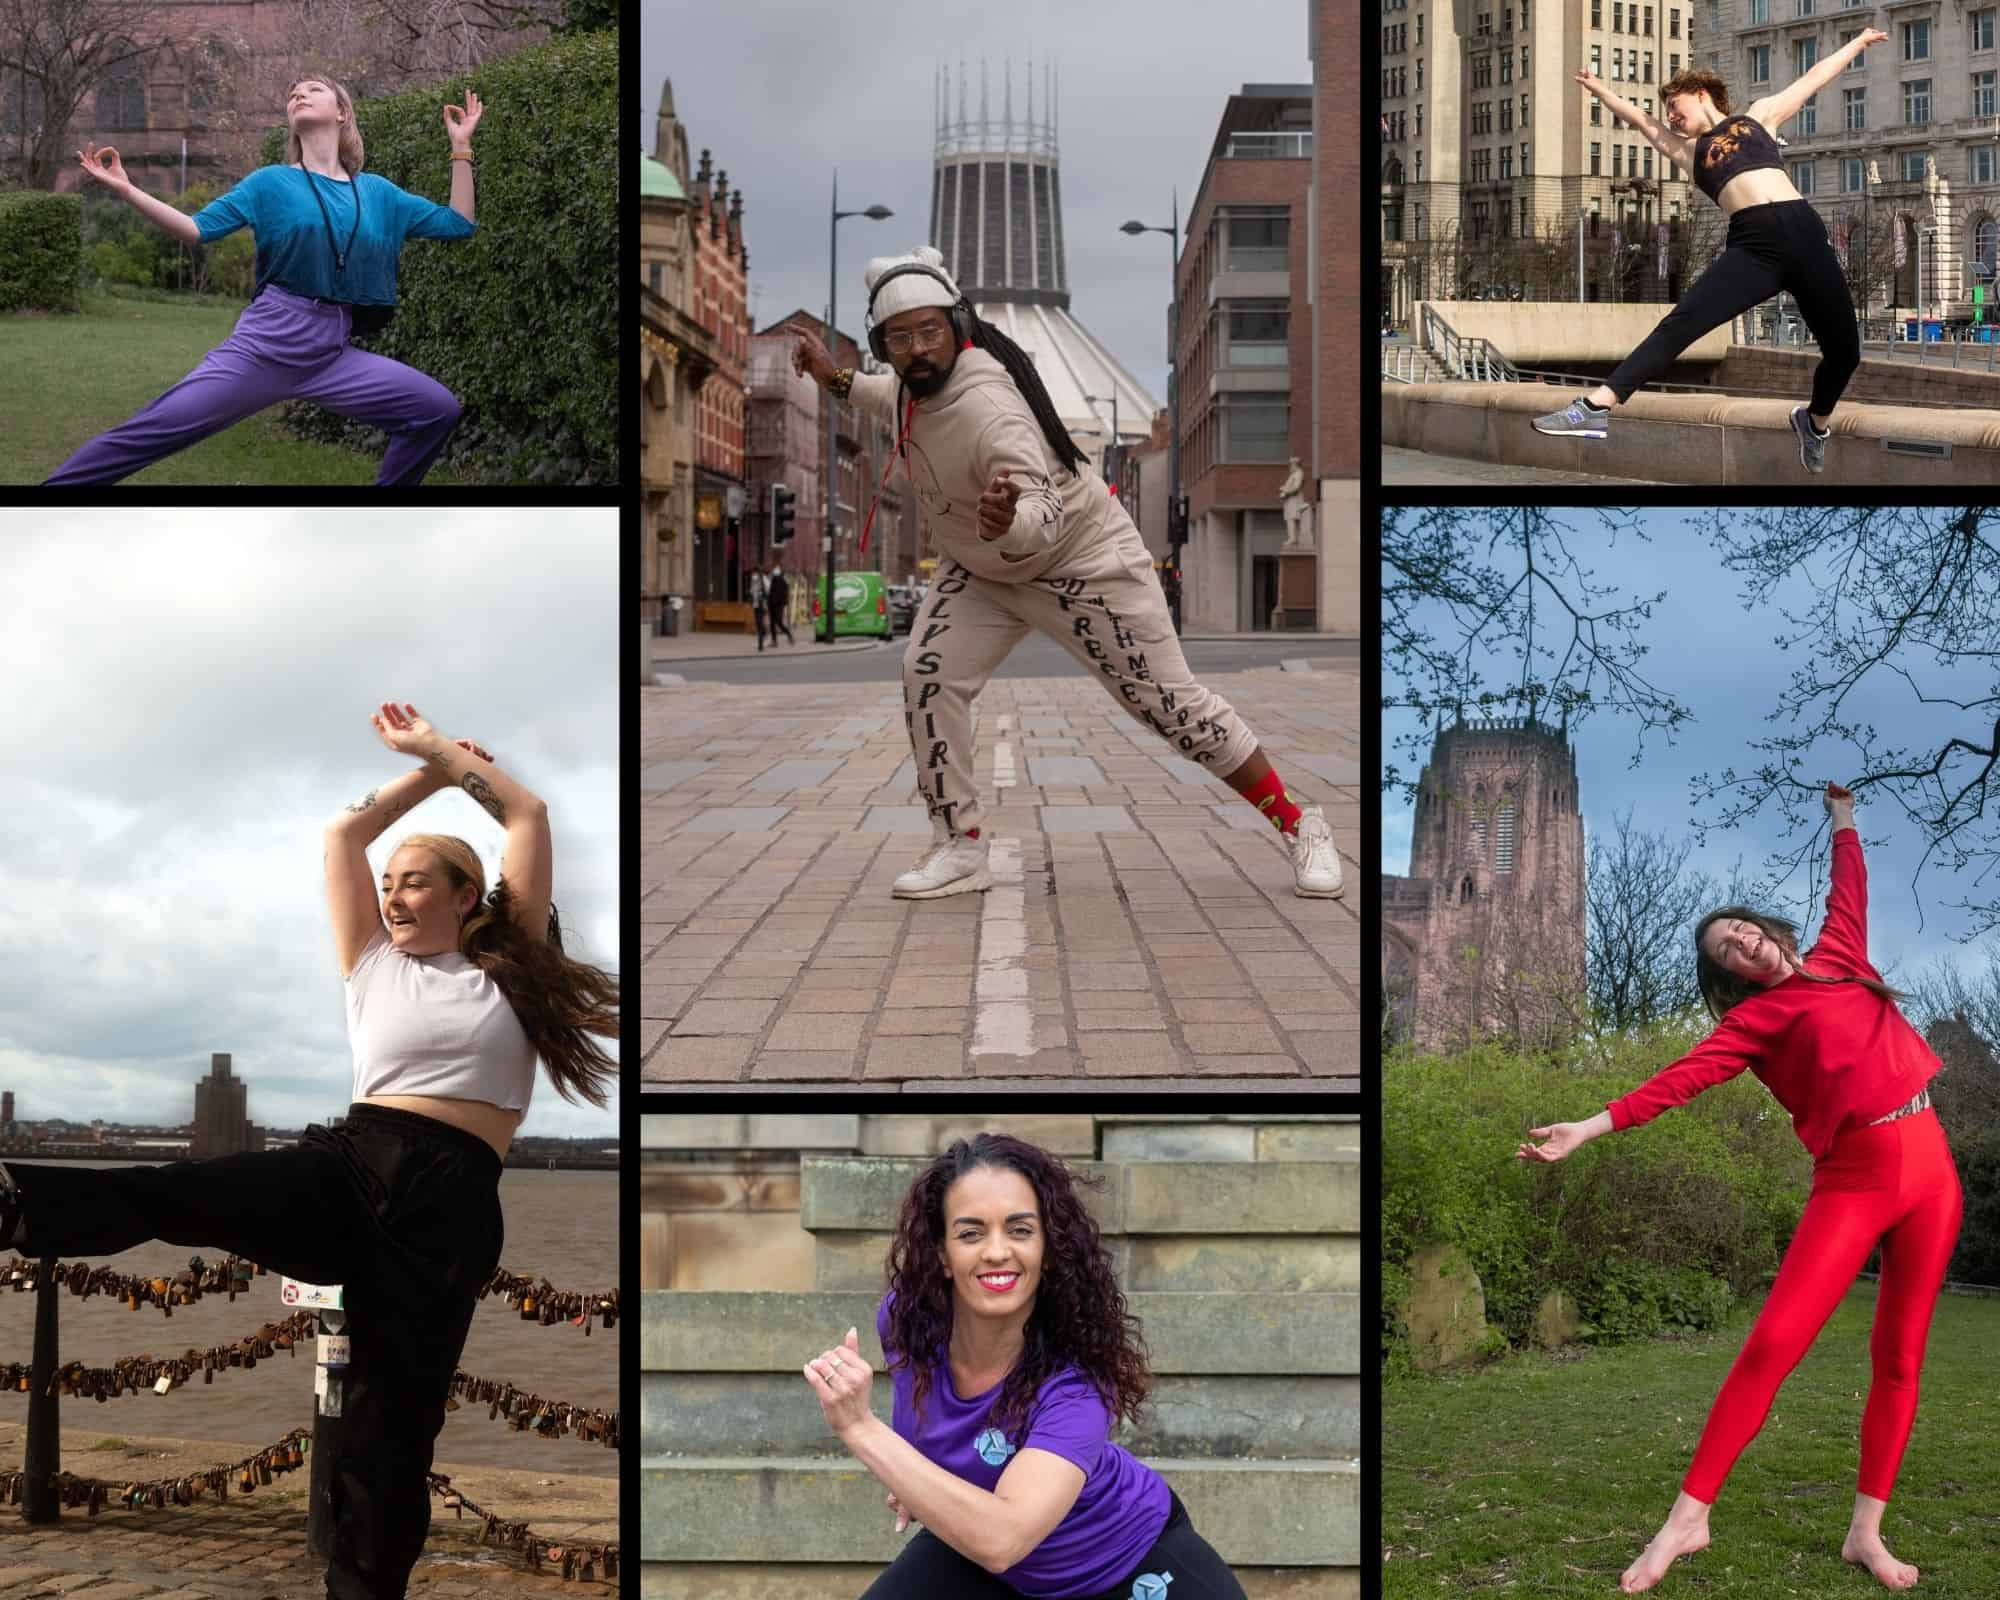 Movema to provide FREE dance leader training for individuals looking to kick start a career in the arts